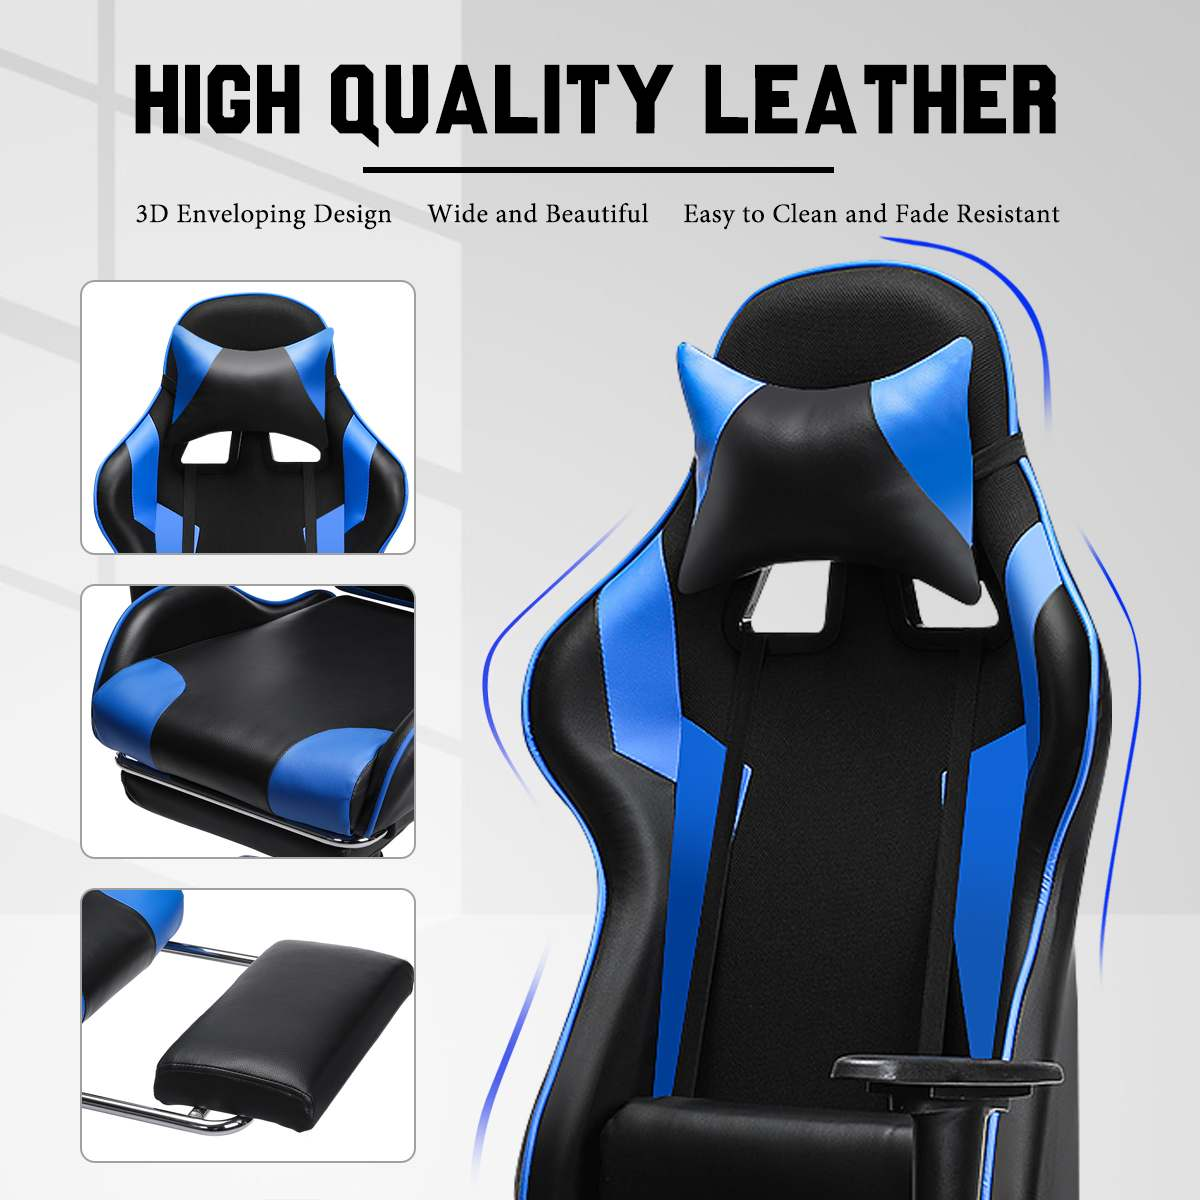 Ha4eb628c857c457ab2900c5b2a839d88X - 155° Gaming Chairs with Footrest Ergonomic Office Chair Adjustable Swivel Leather High Back Computer Desk Chair with Headrest